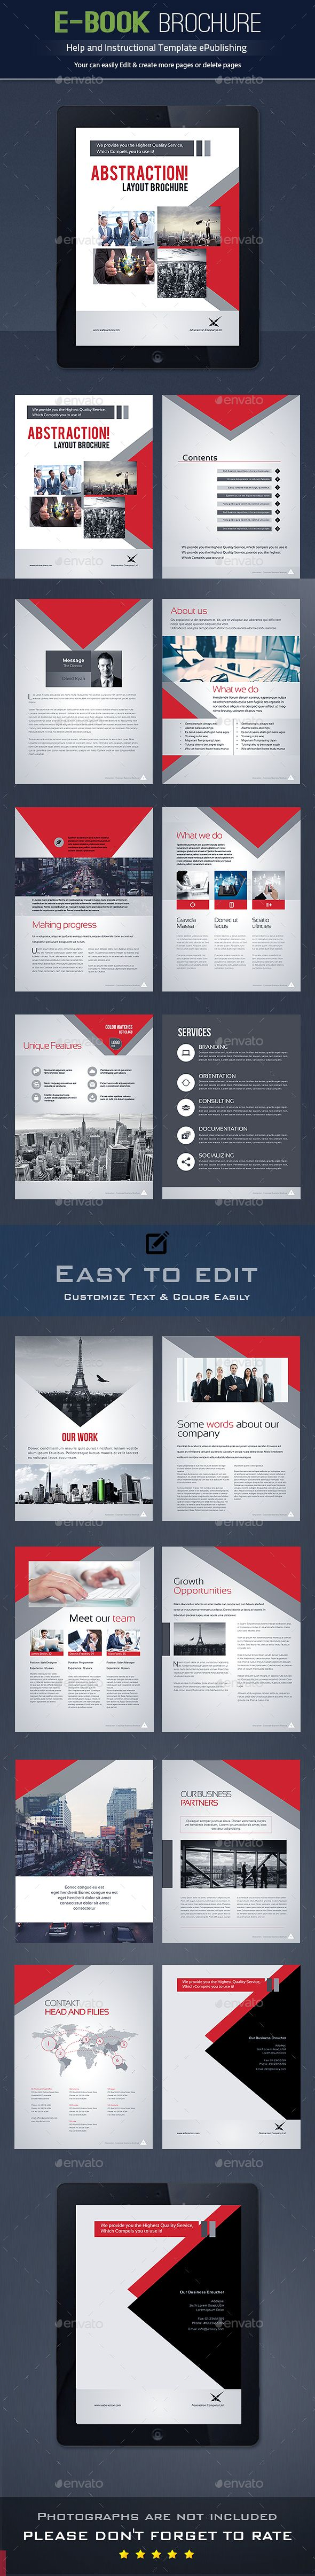 Generous 1 2 3 Nu Kapitel Resume Big 10 Minute Resume Flat 10 Steps To Creating A Resume 16 Year Old Resumes Youthful 2 Round Label Template Pink2014 Calendar Excel Template 471 Best Images About E Publishing Templates On Pinterest | E ..